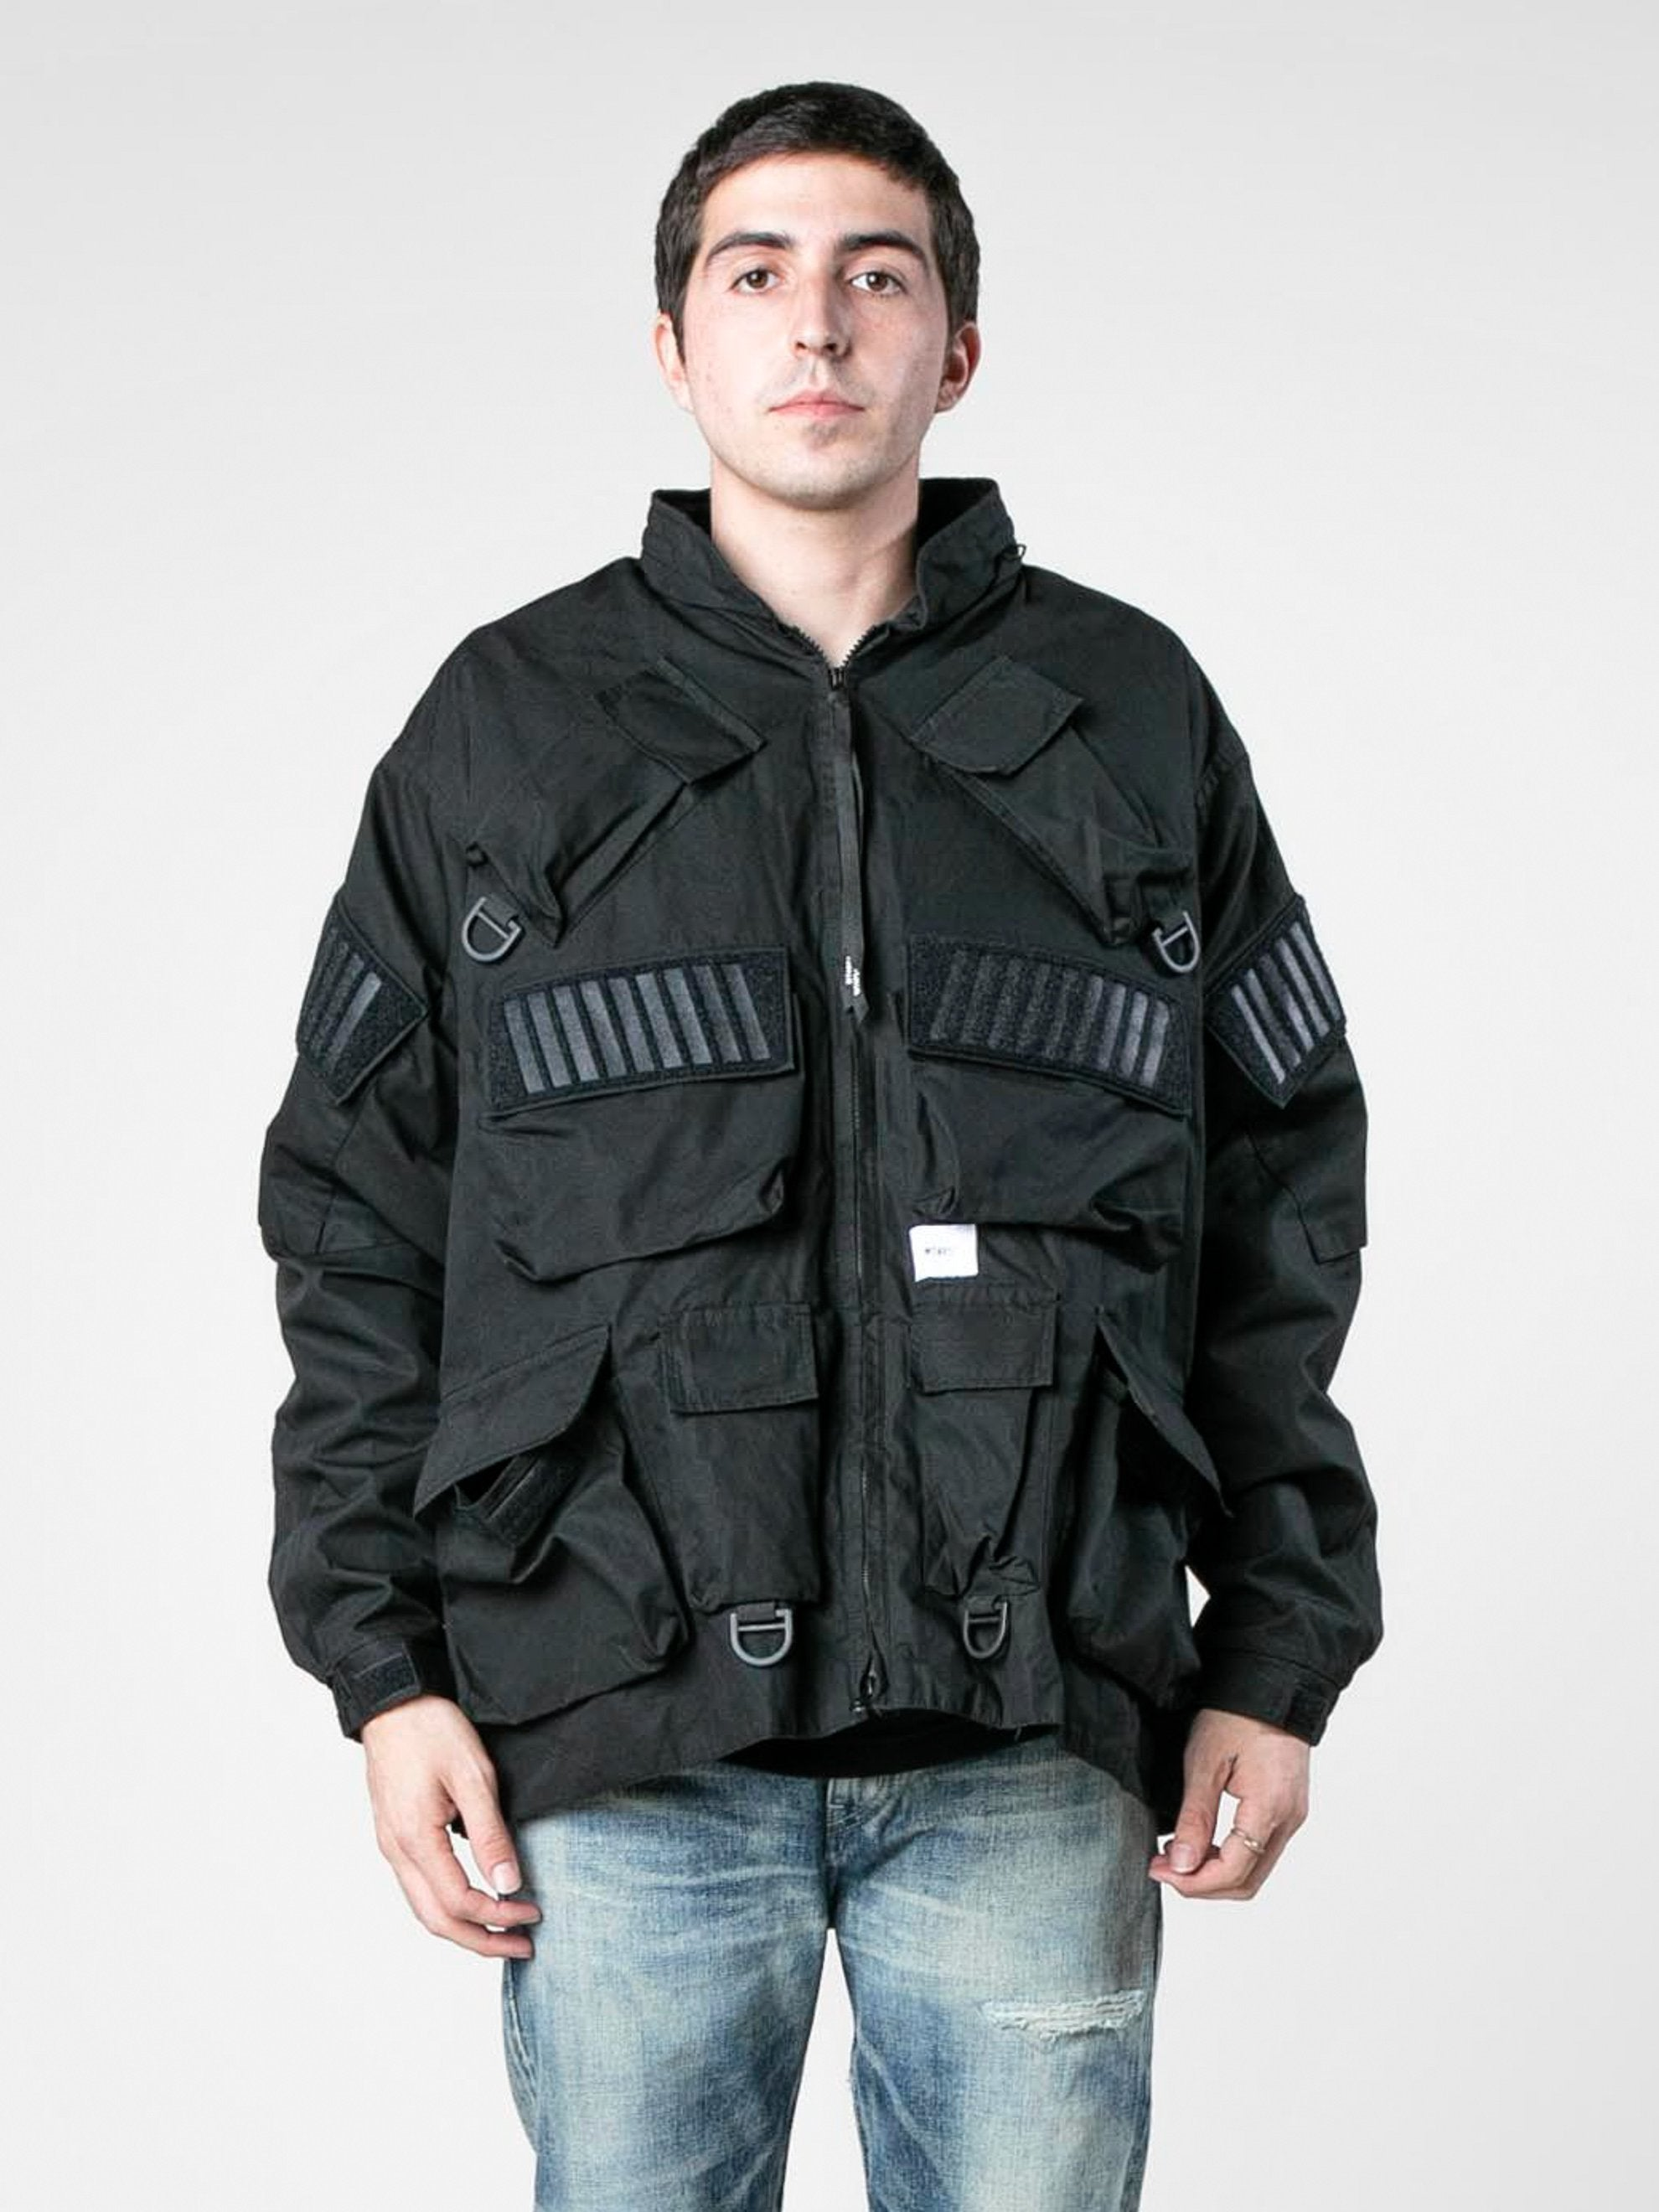 Black Modular / Jacket. Cotton. Weather 2